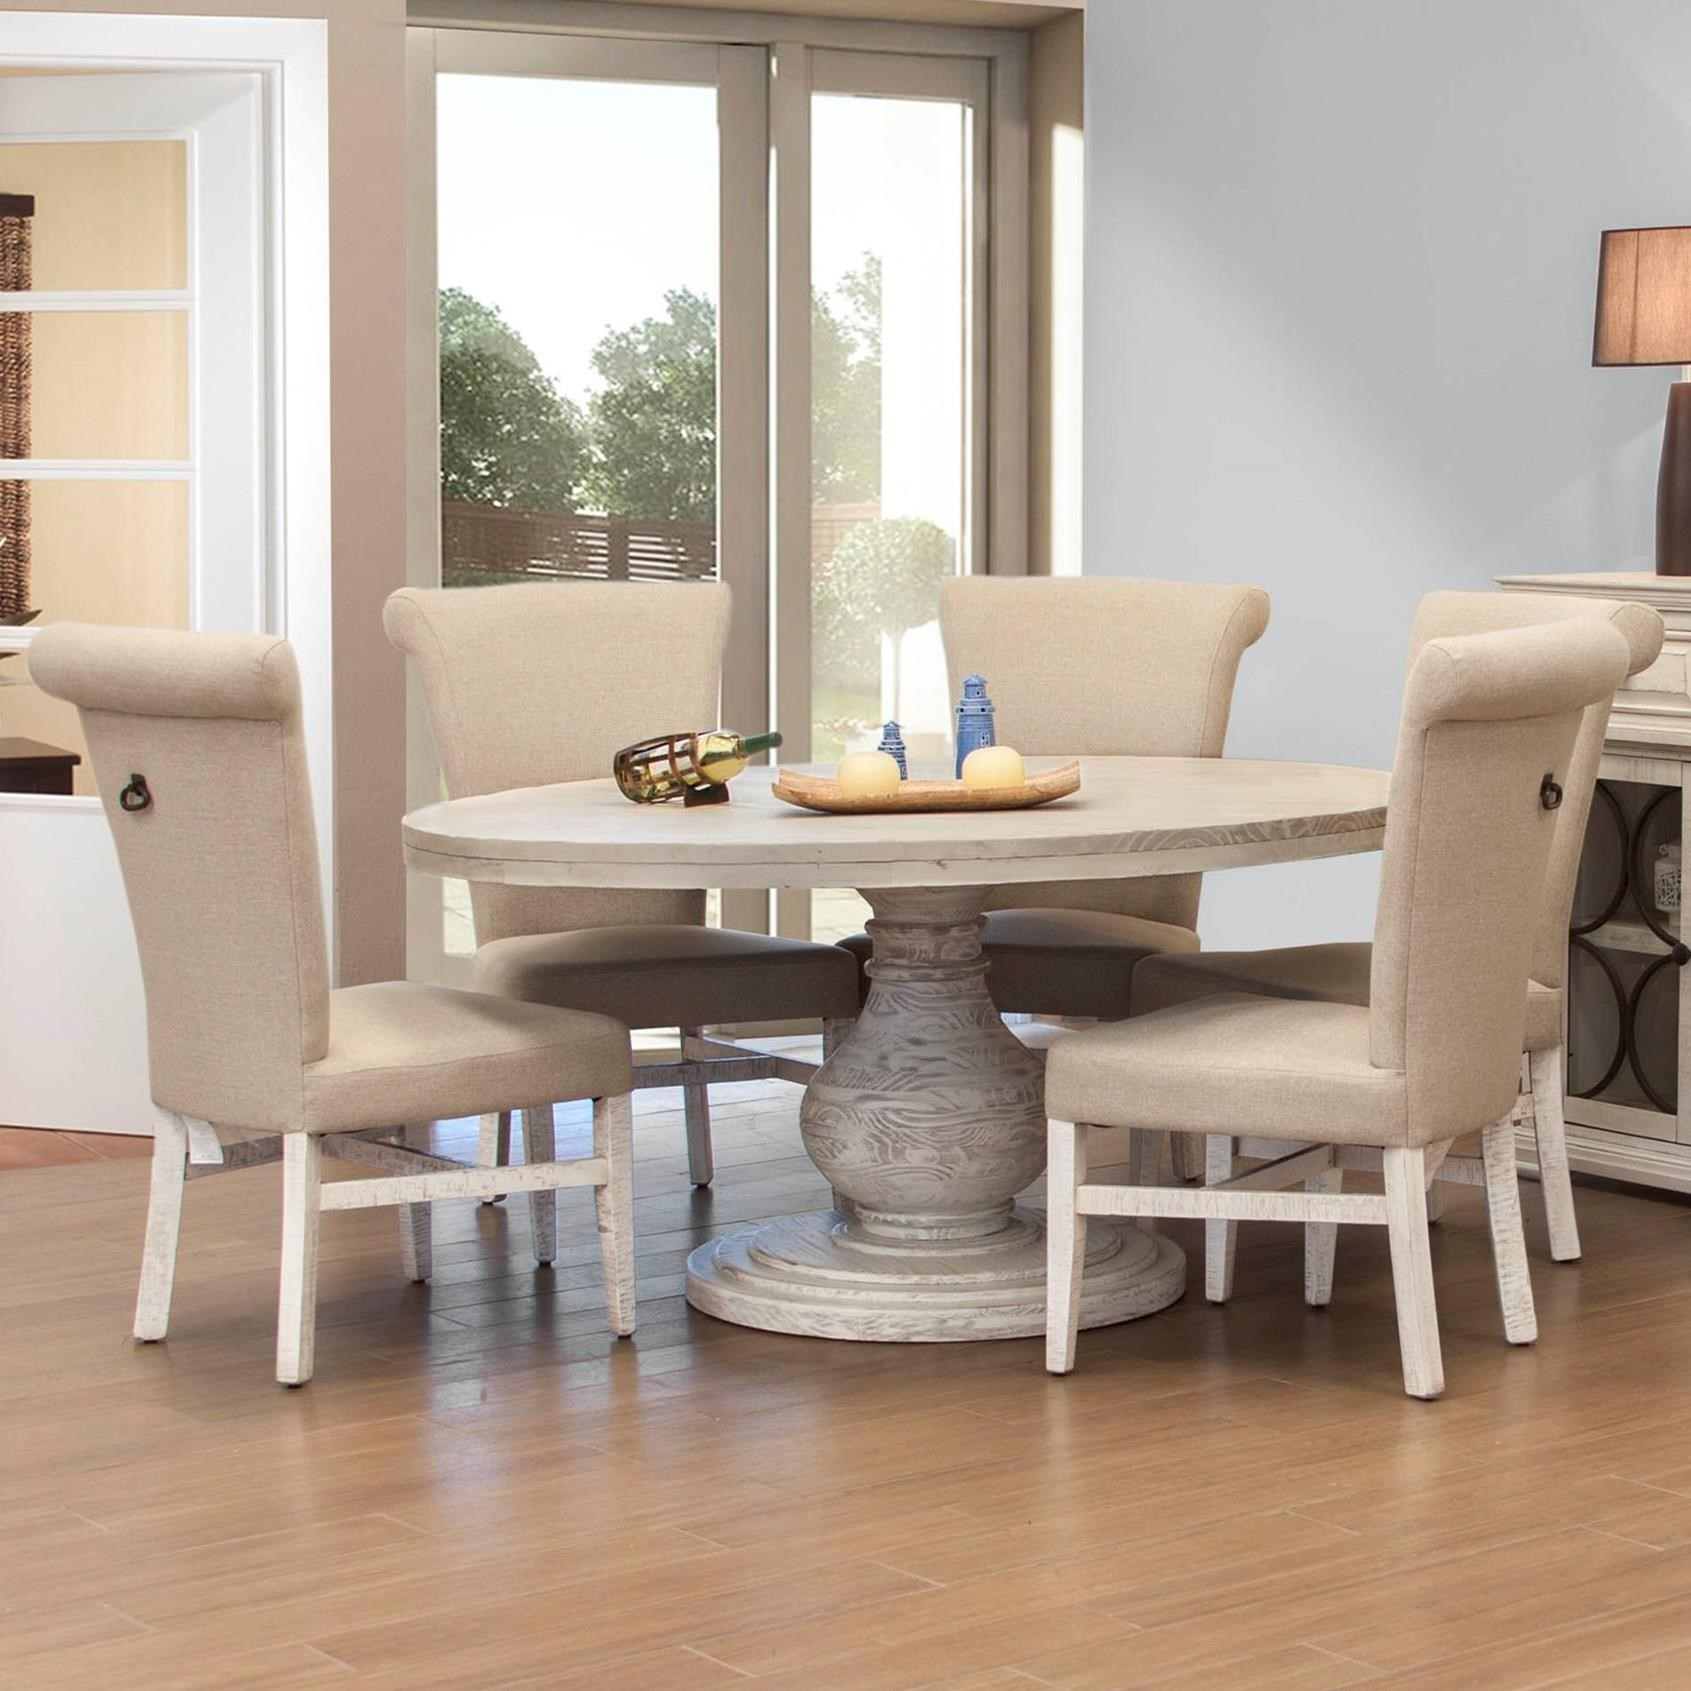 Bonanza Ivory 6 Piece Table and Chair Set by International Furniture Direct at Fashion Furniture